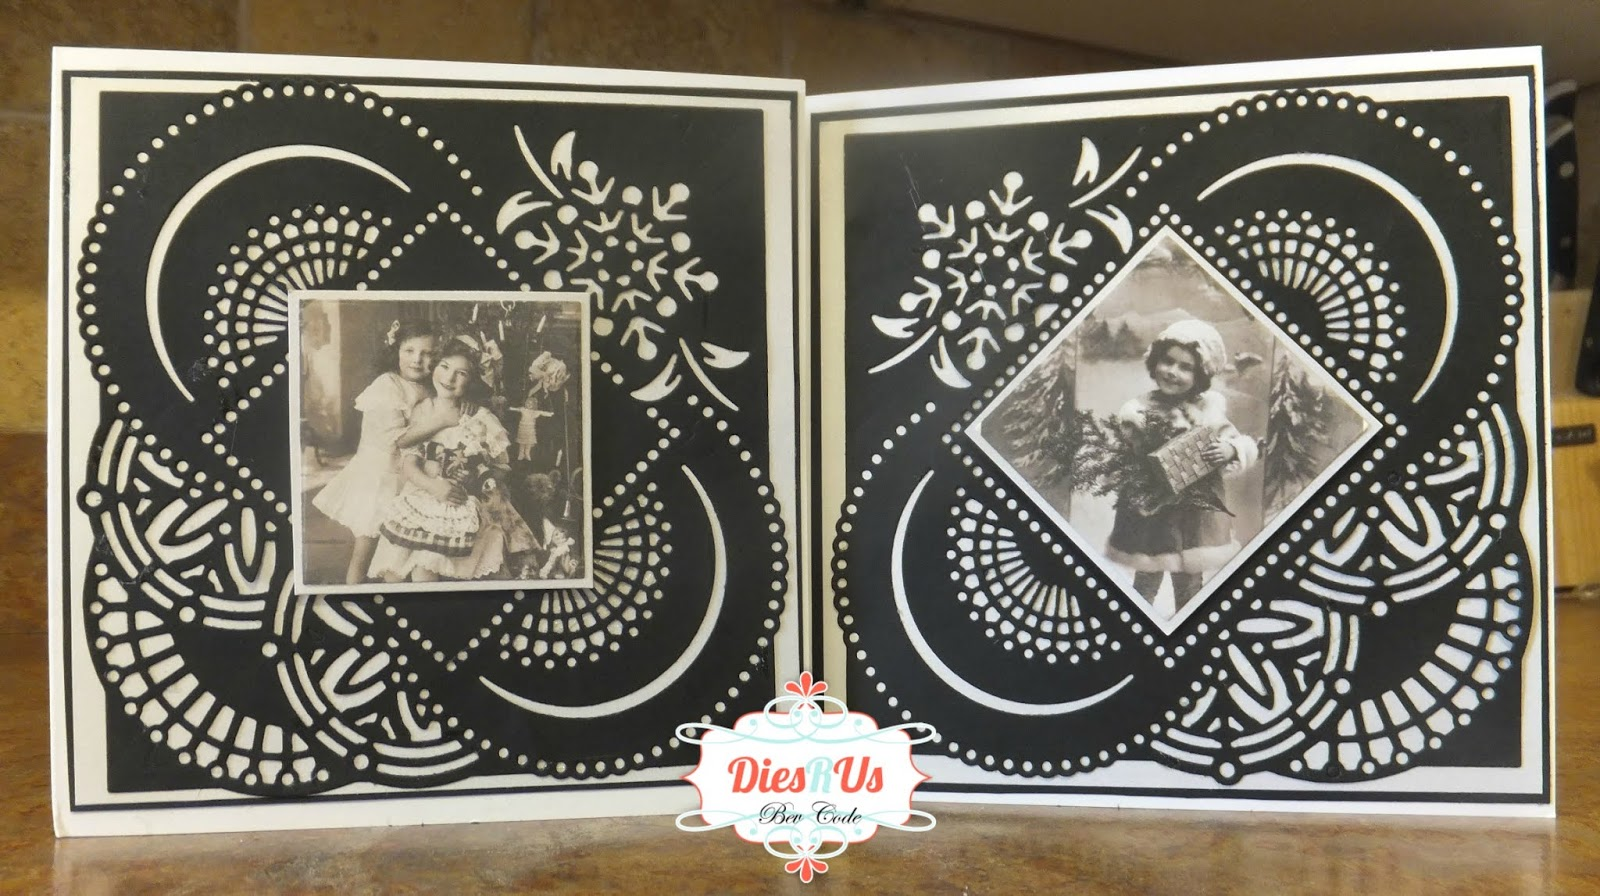 Dies R Us Stunning Christmas Cards To Celebrate Today Merry Christmas